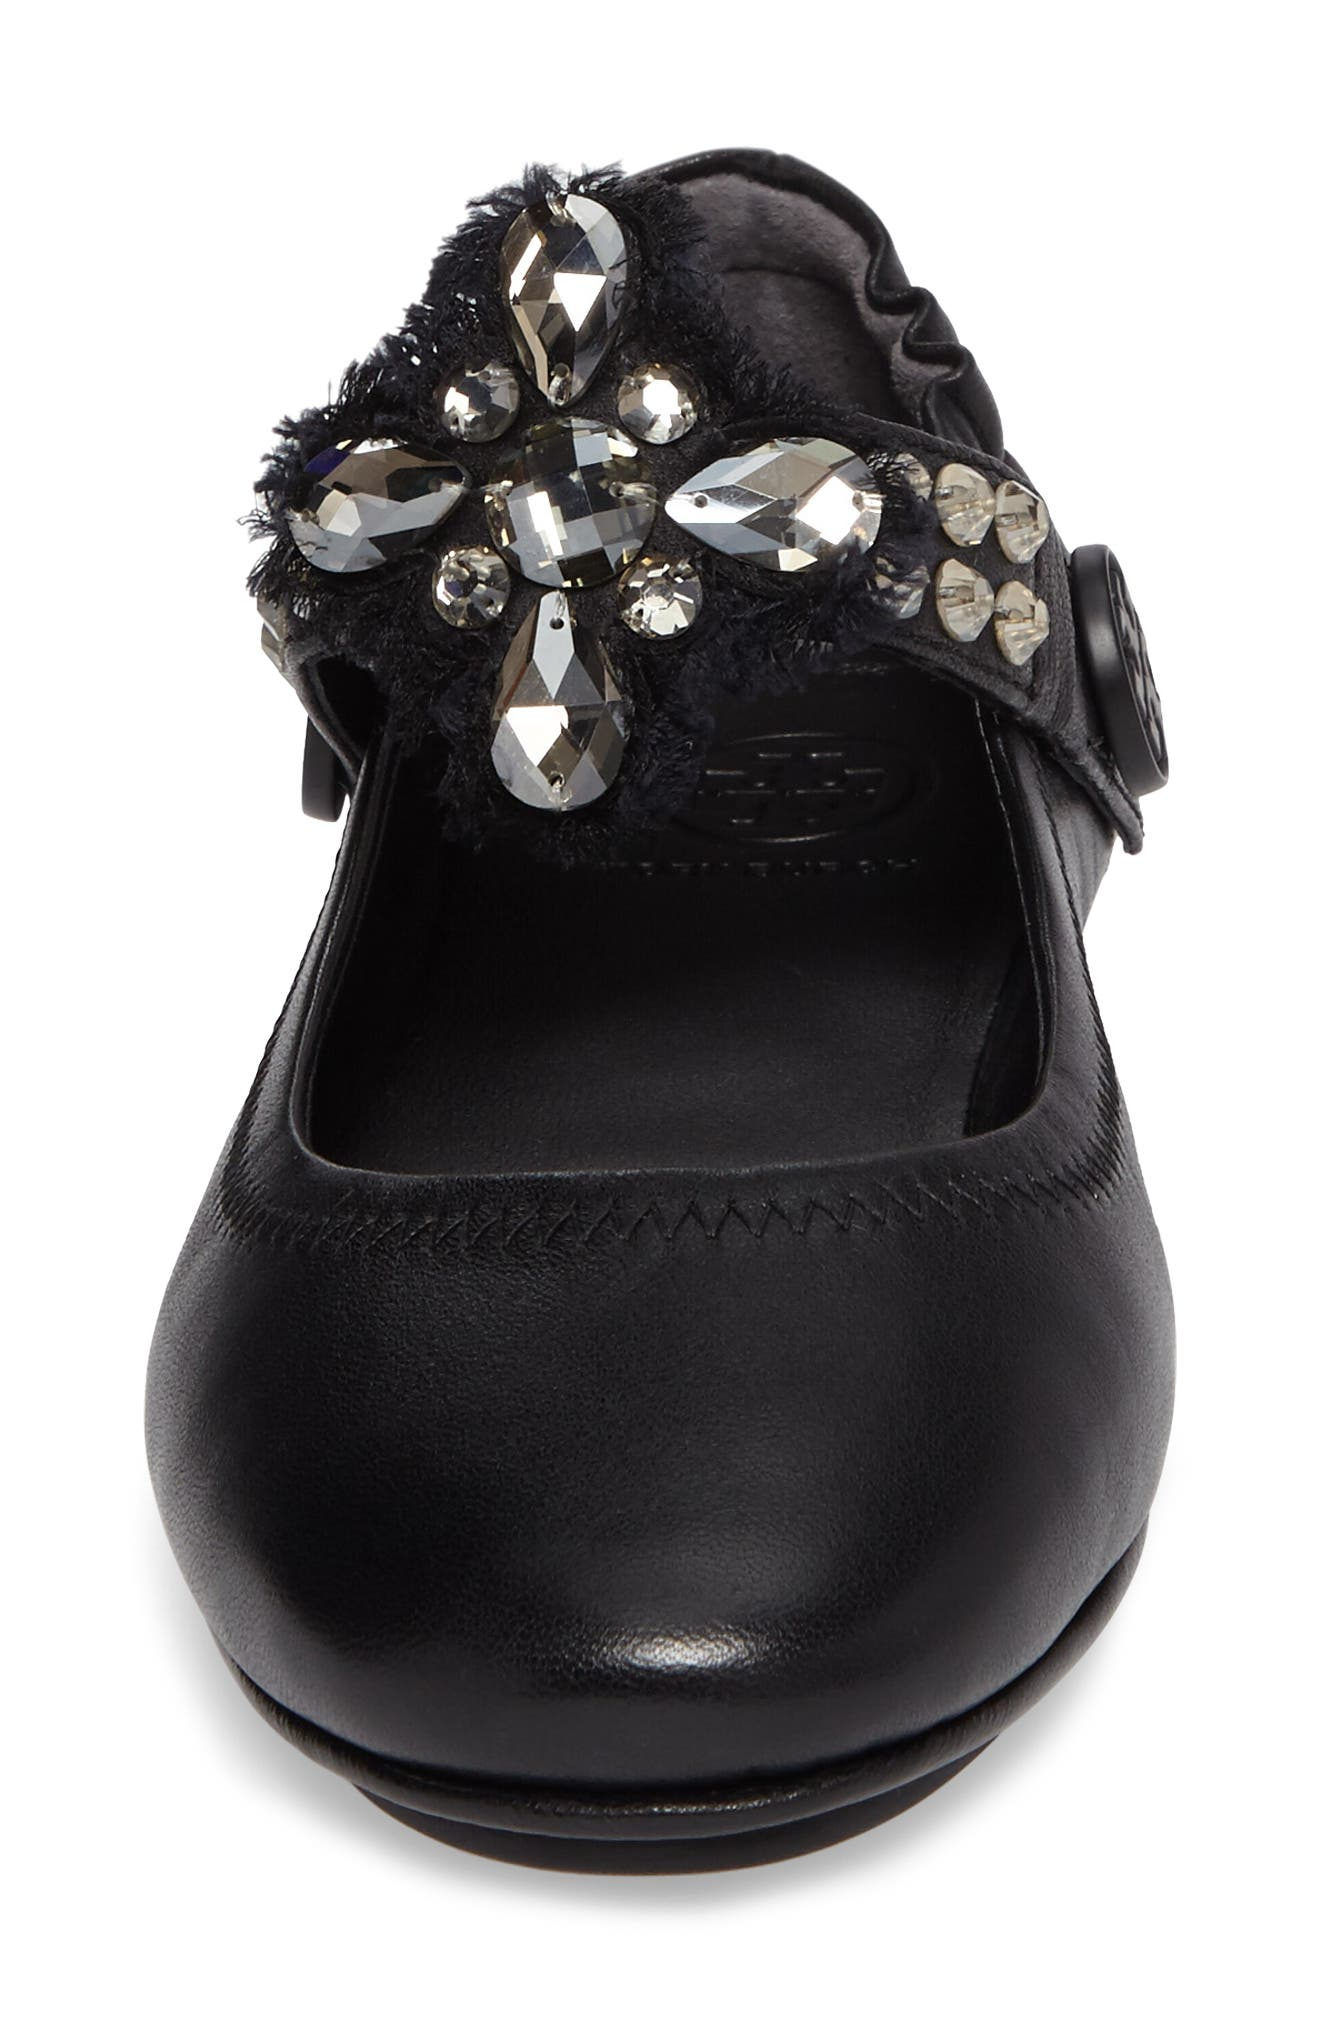 Minnie Embellished Convertible Strap Ballet Flat,                             Alternate thumbnail 4, color,                             Black/ Clear